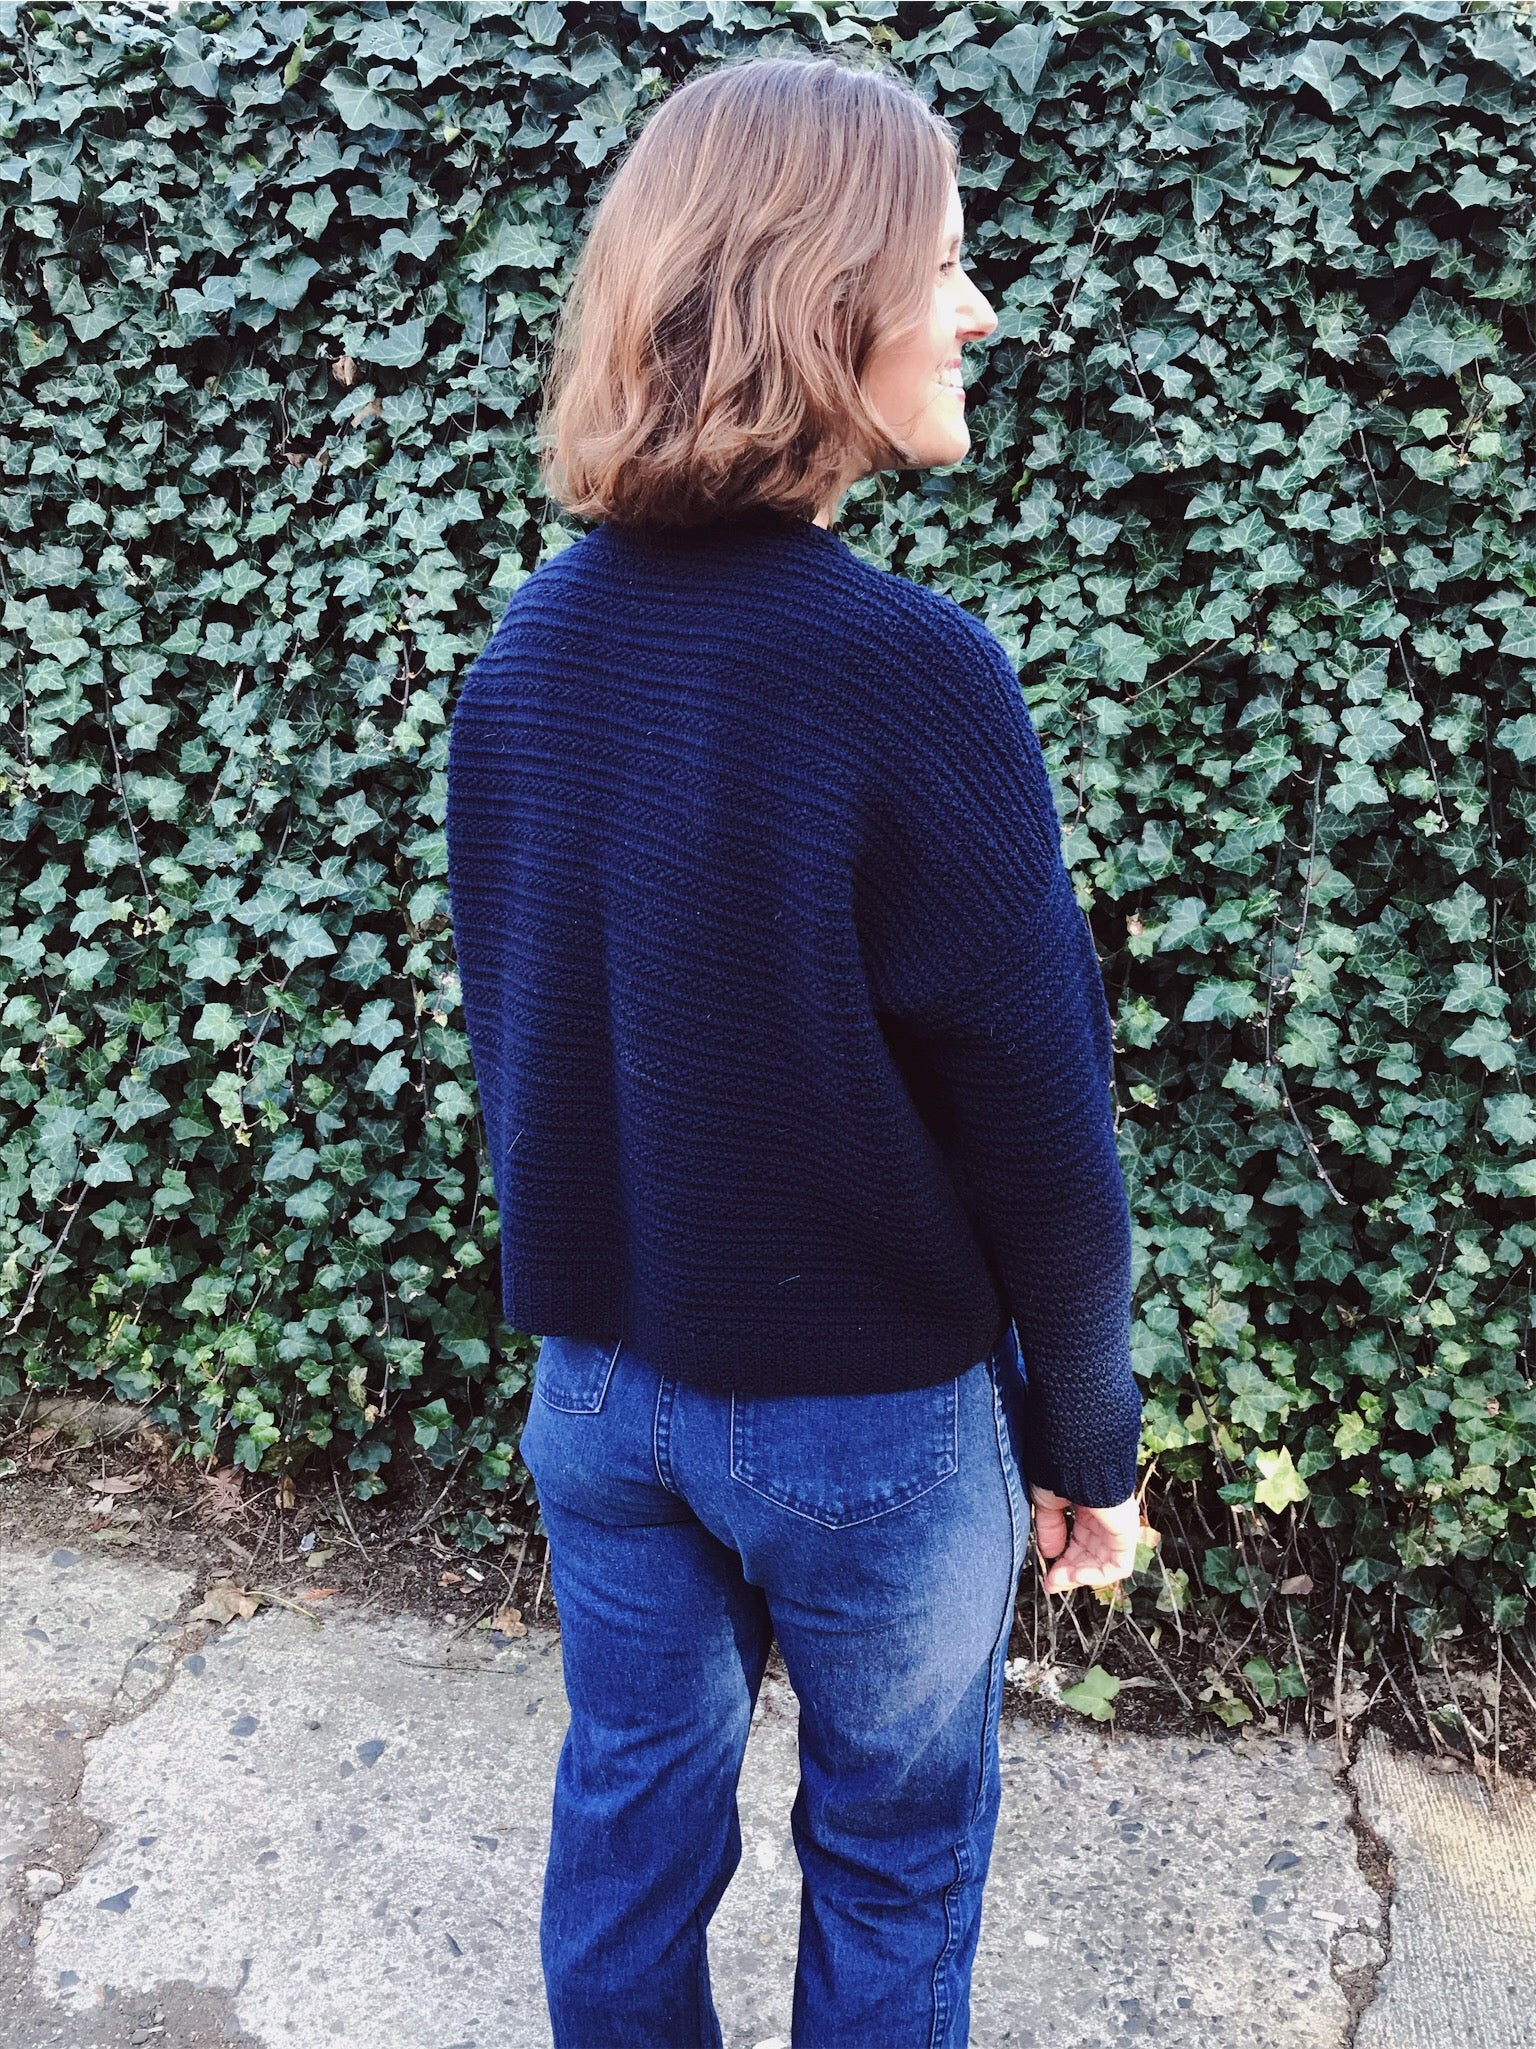 lis wears her hand knit wool weidlinger pullover sweater